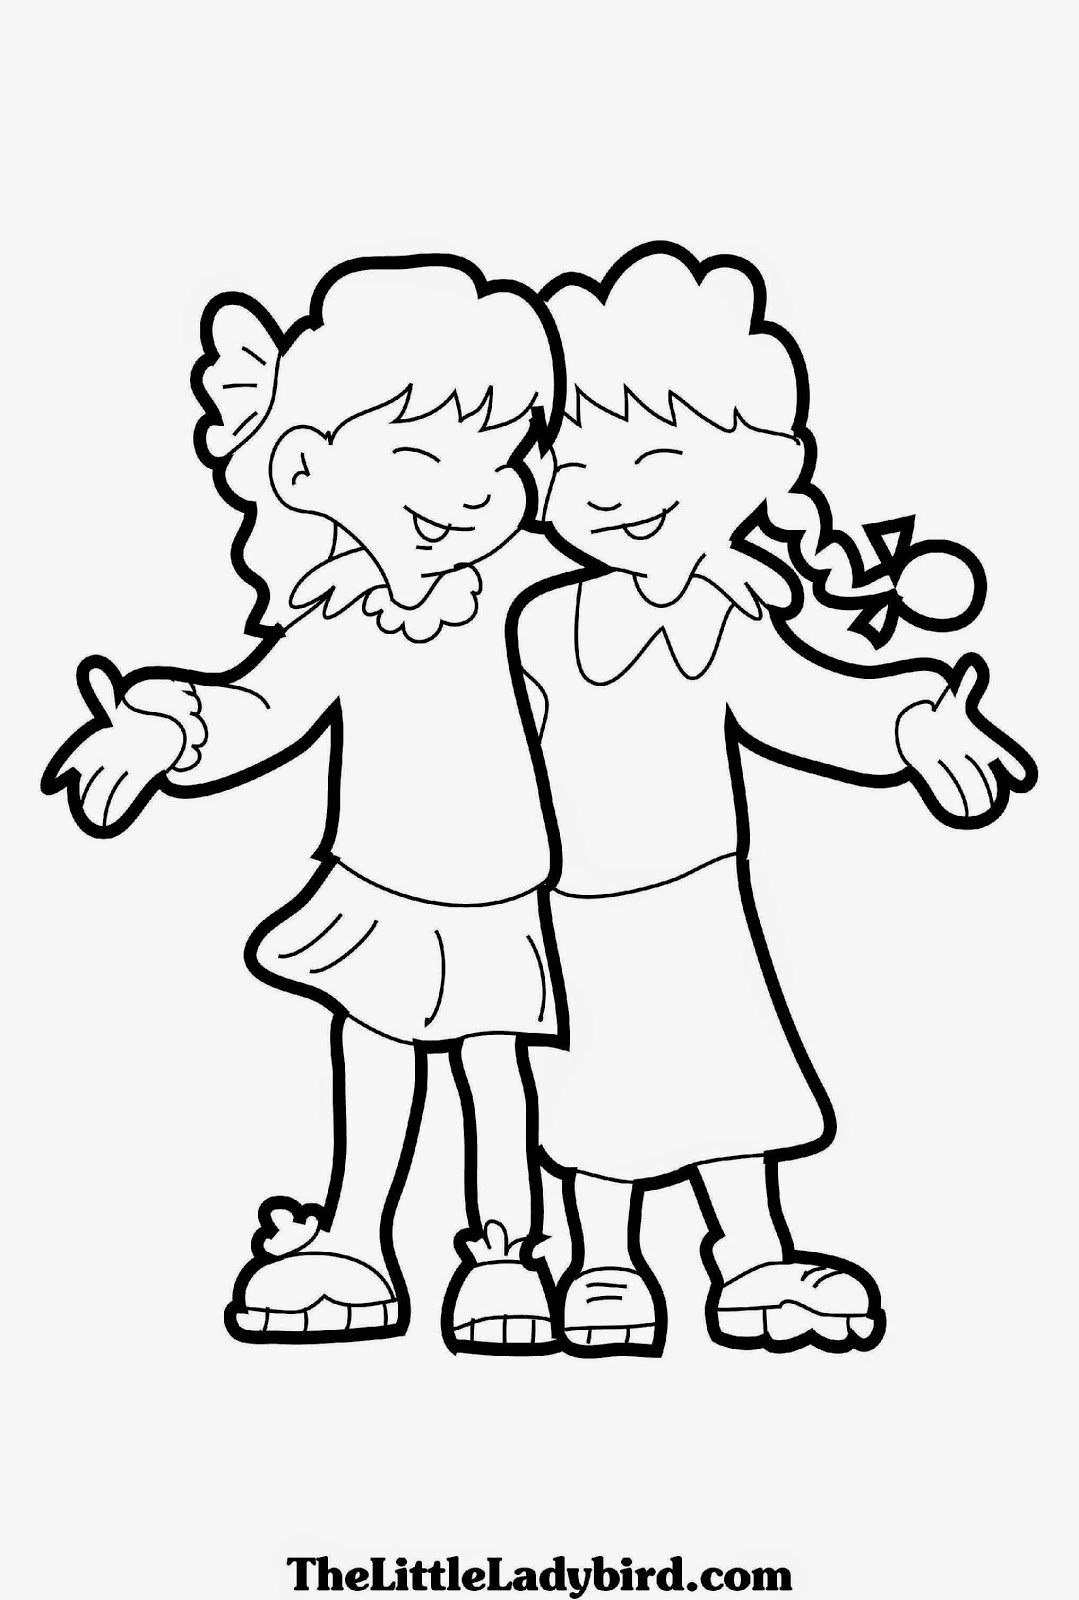 friends coloring page friendship coloring pages best coloring pages for kids friends page coloring